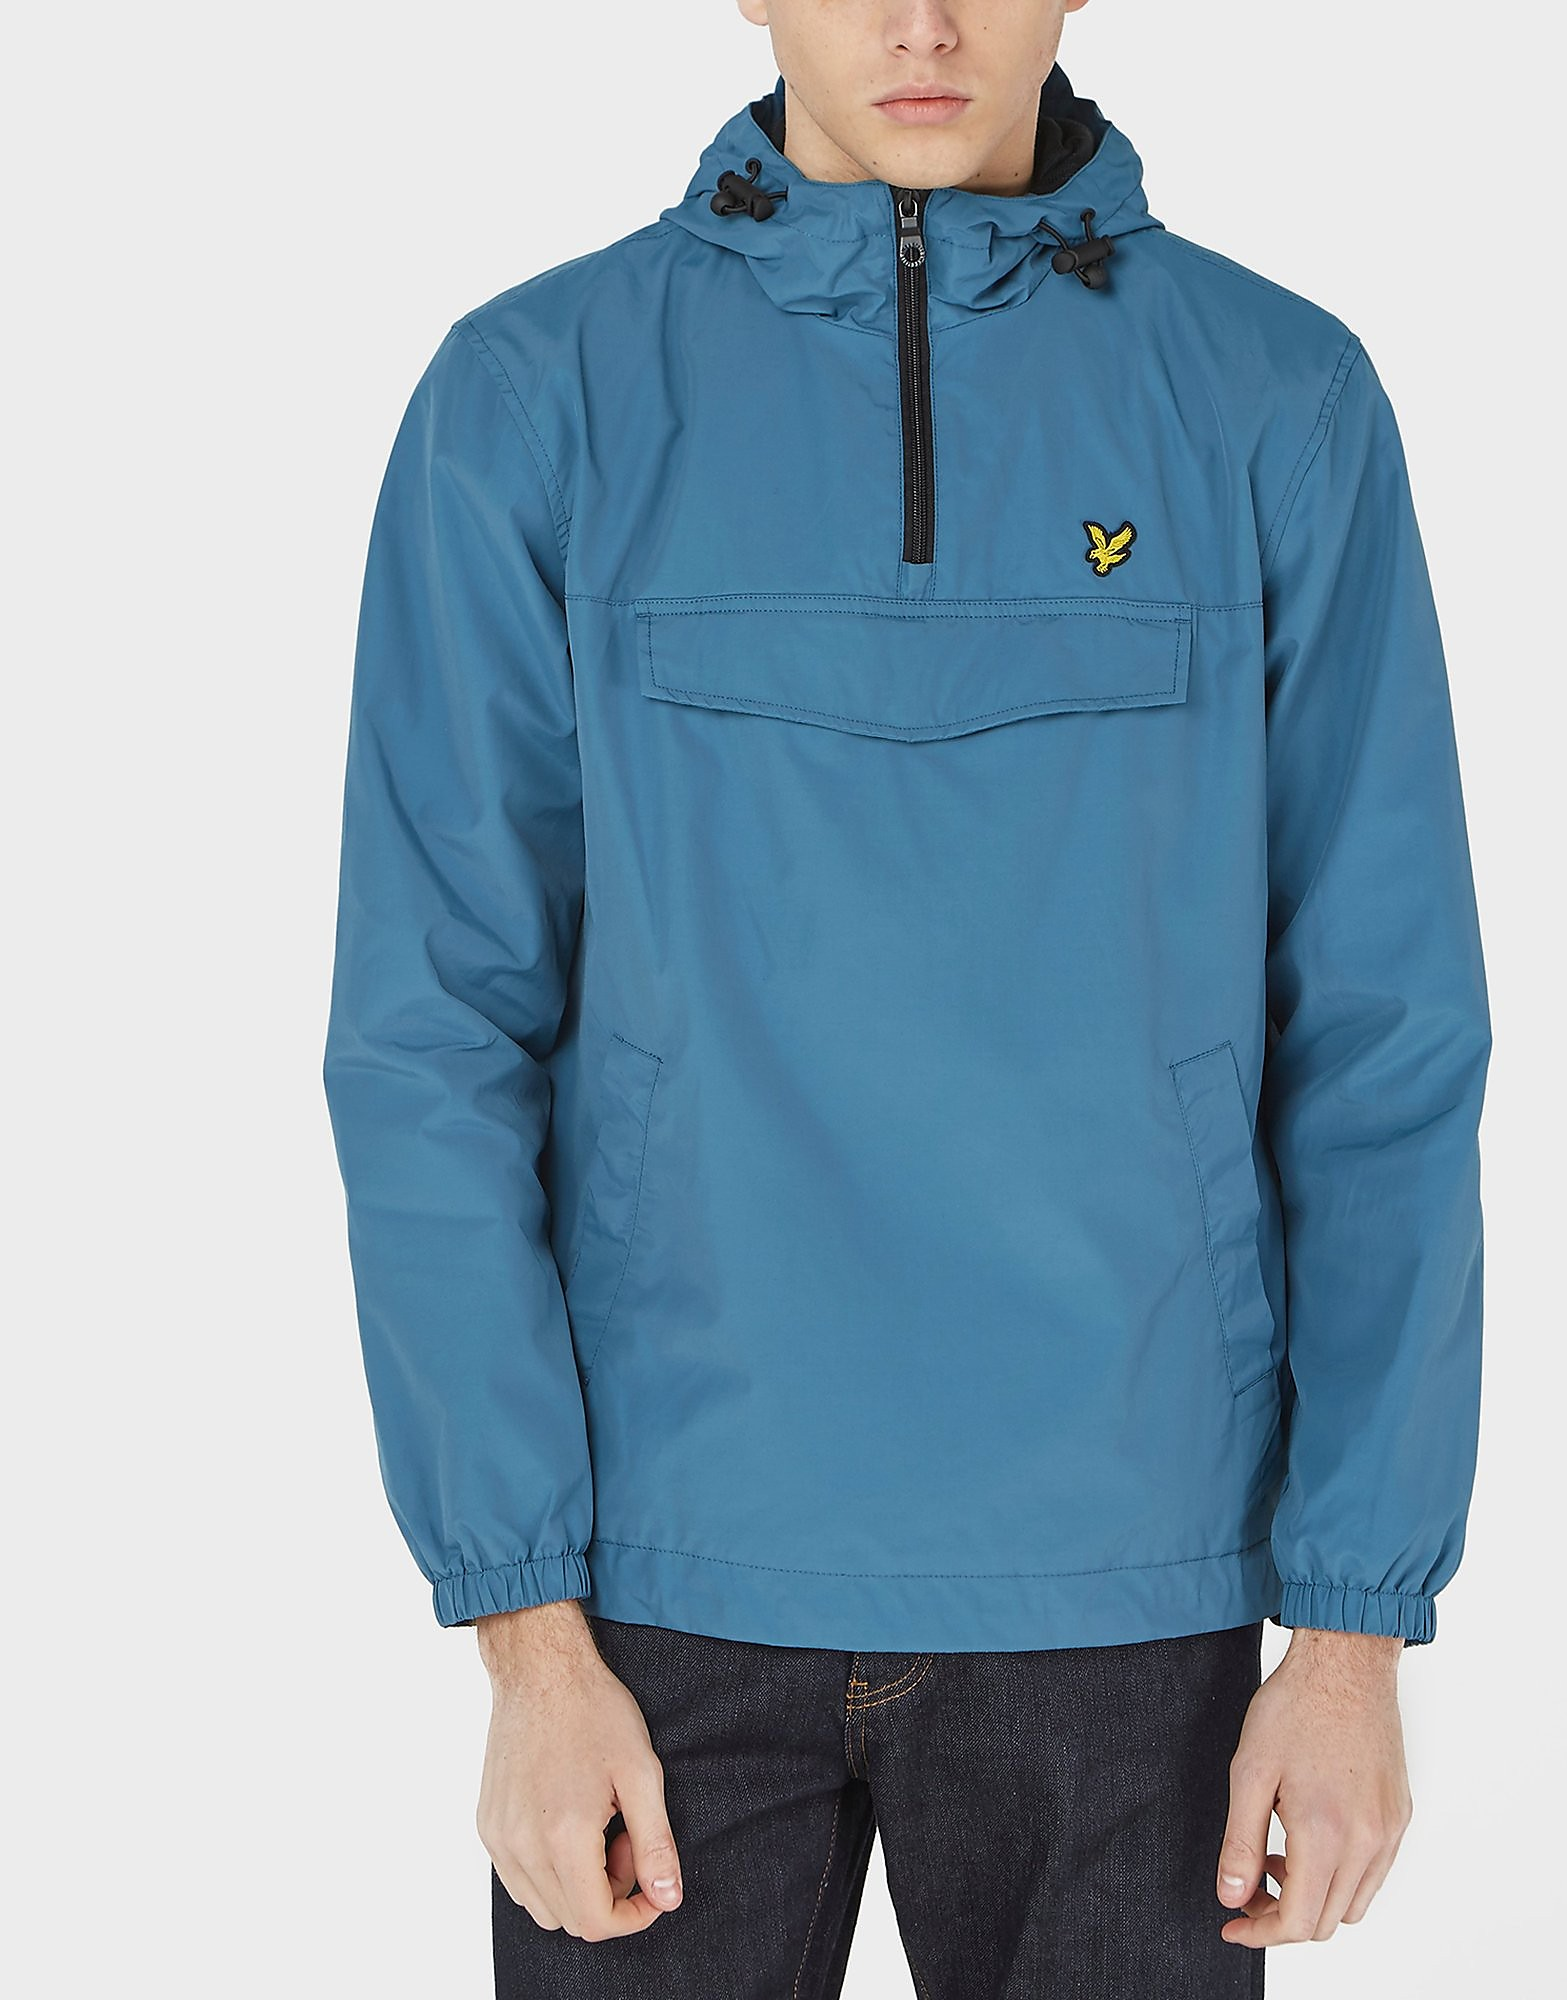 Lyle & Scott Overhead Lightweight Hooded Jacket